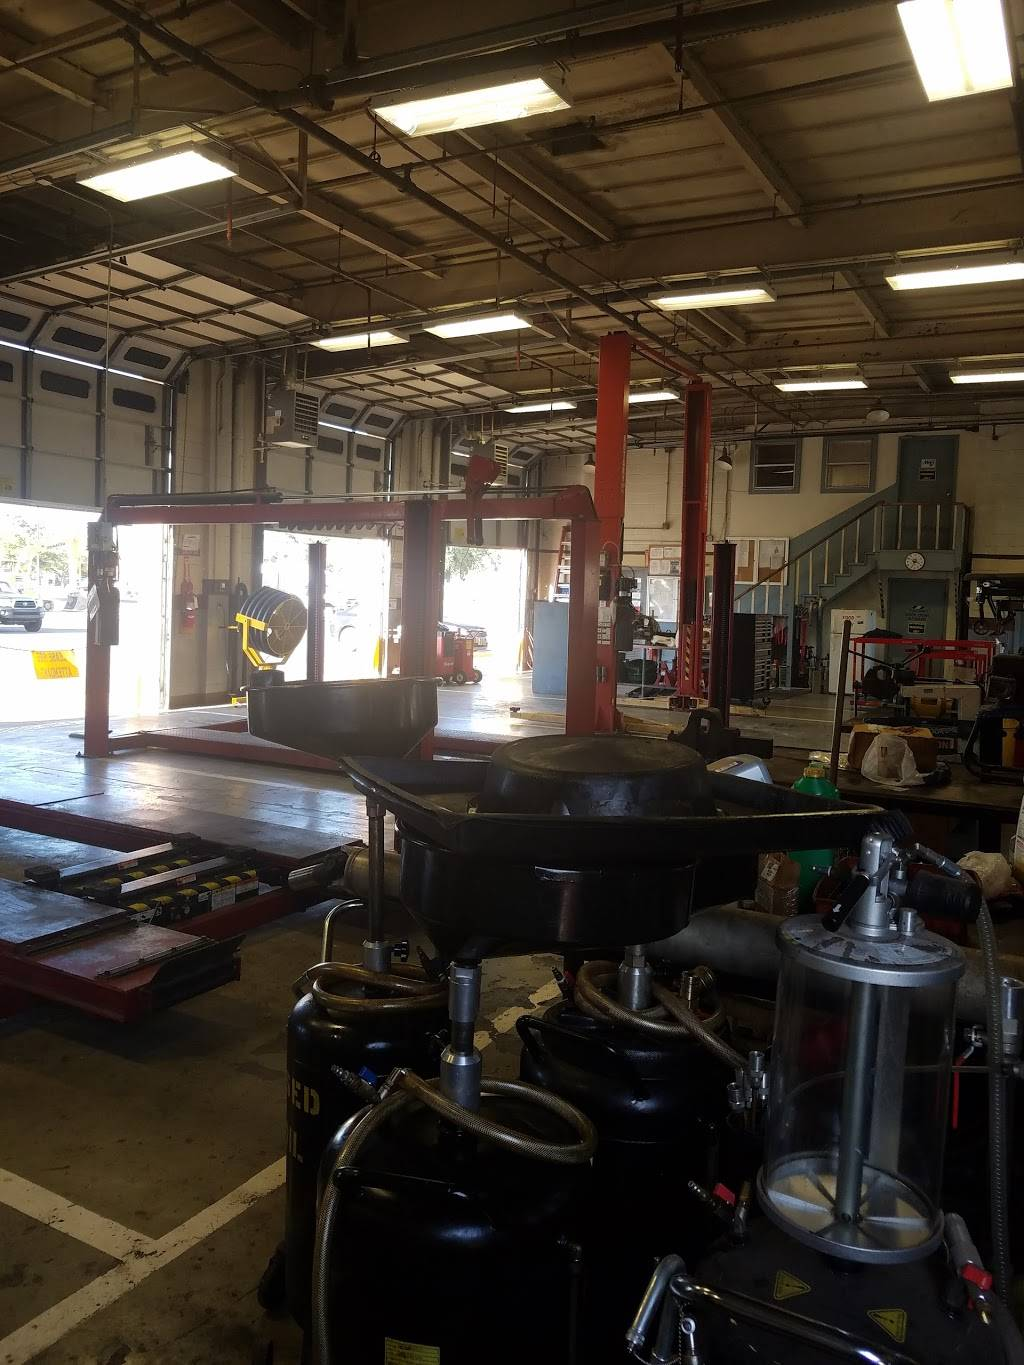 Auto Skills Center - car repair  | Photo 3 of 3 | Address: Belle Chasse, LA 70037, USA | Phone: (504) 678-3448